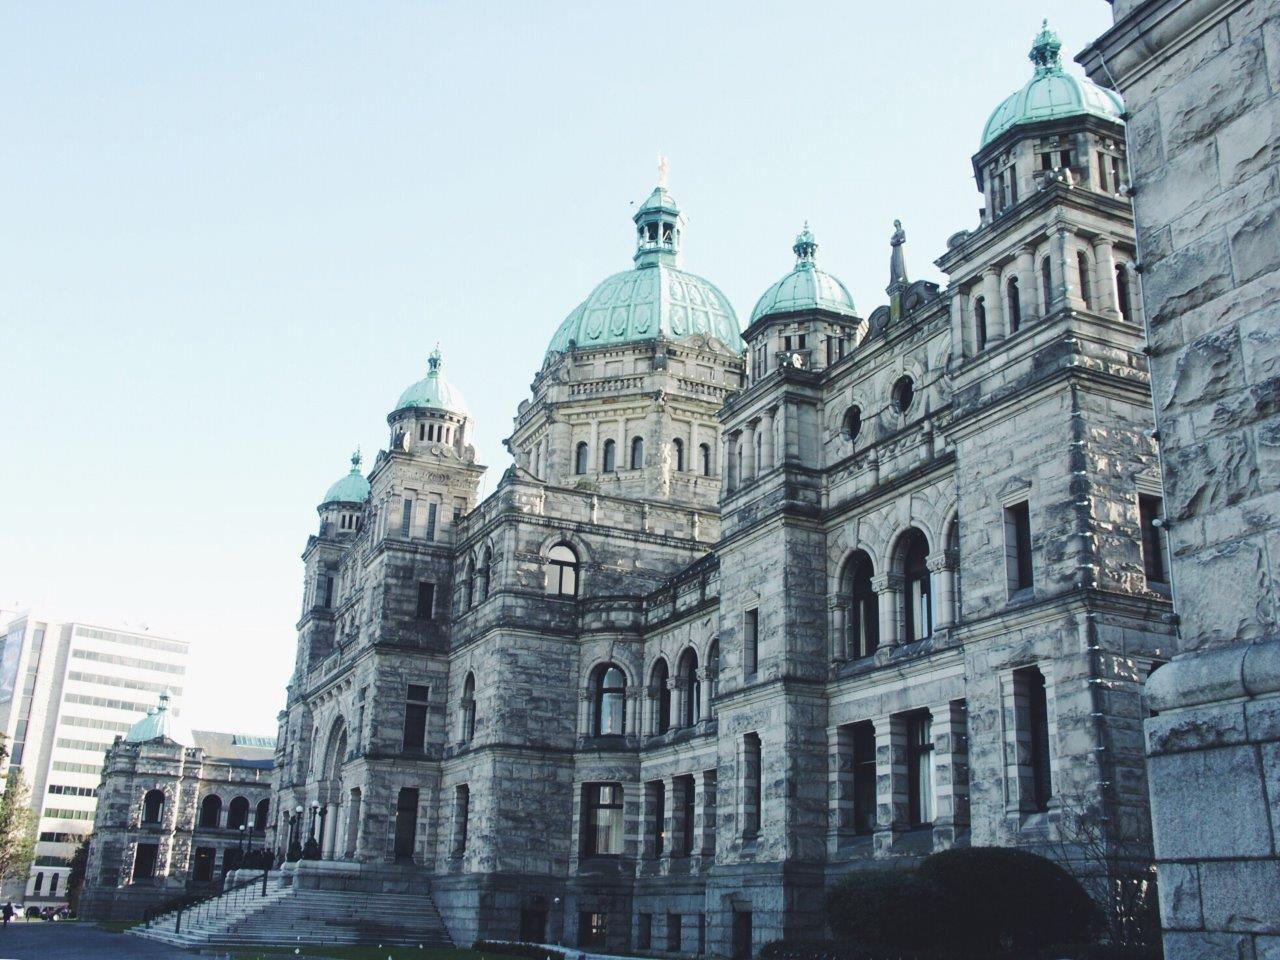 Winter Holiday: Victoria, BC